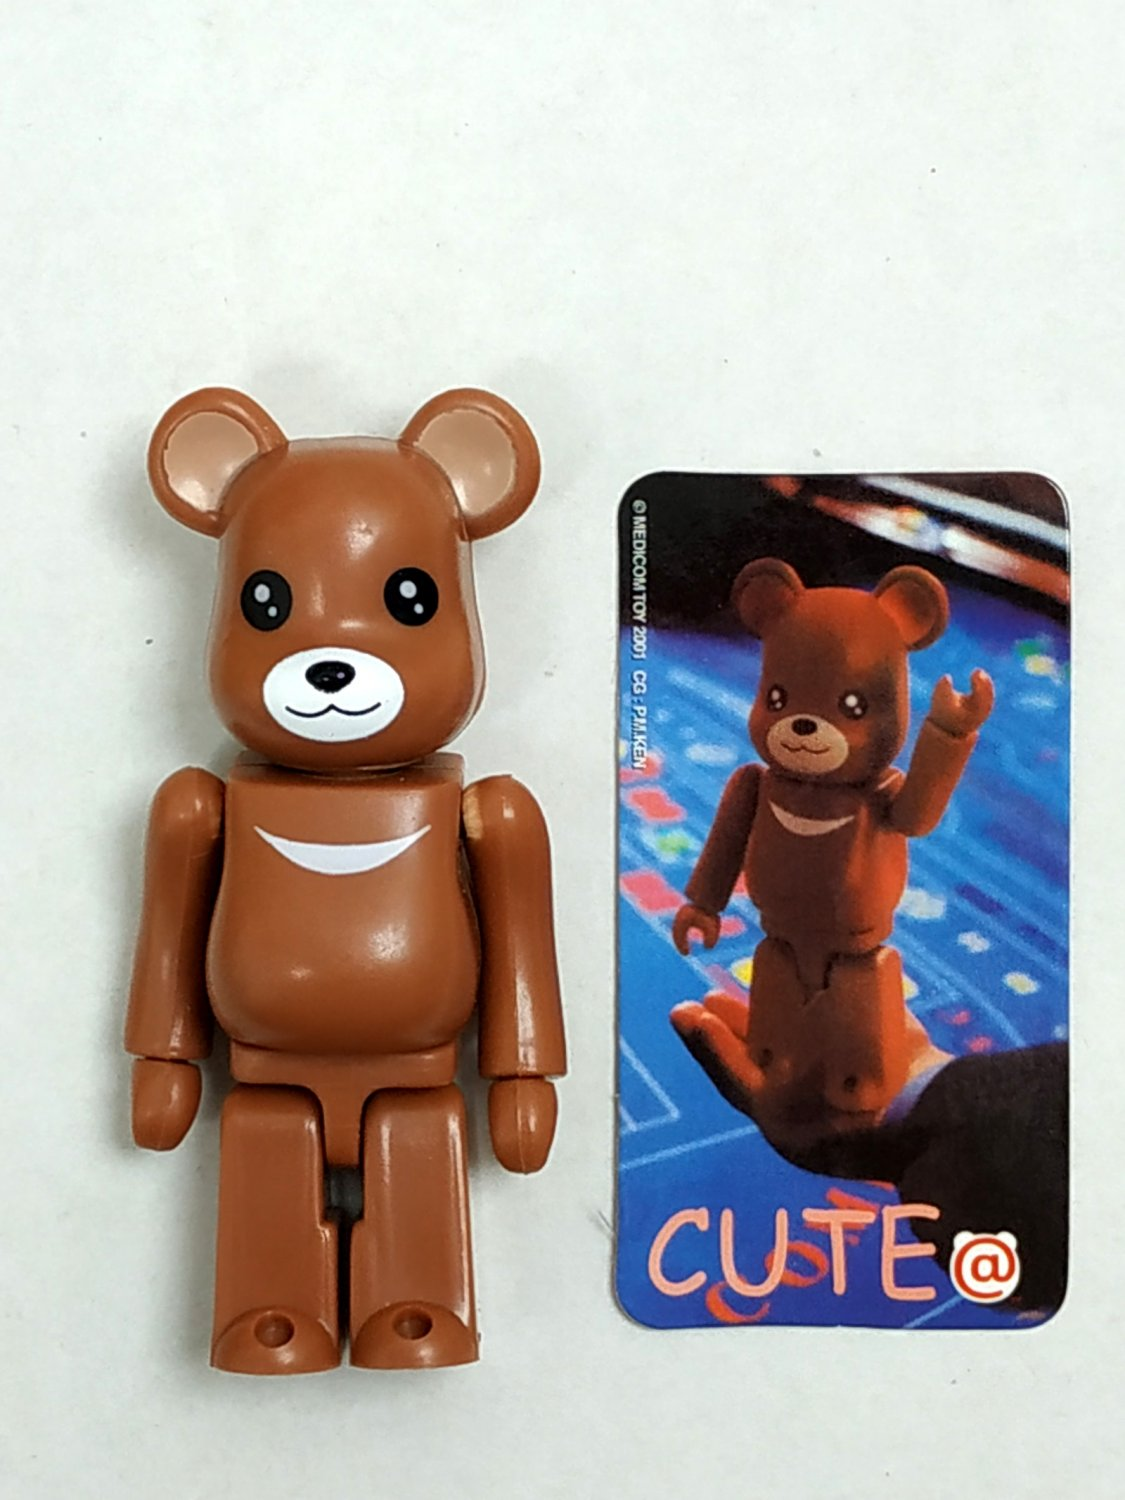 Medicom Toy 2001 Be@rbrick 100% Bearbrick Series 2 Cute Action Figure S2 collectible